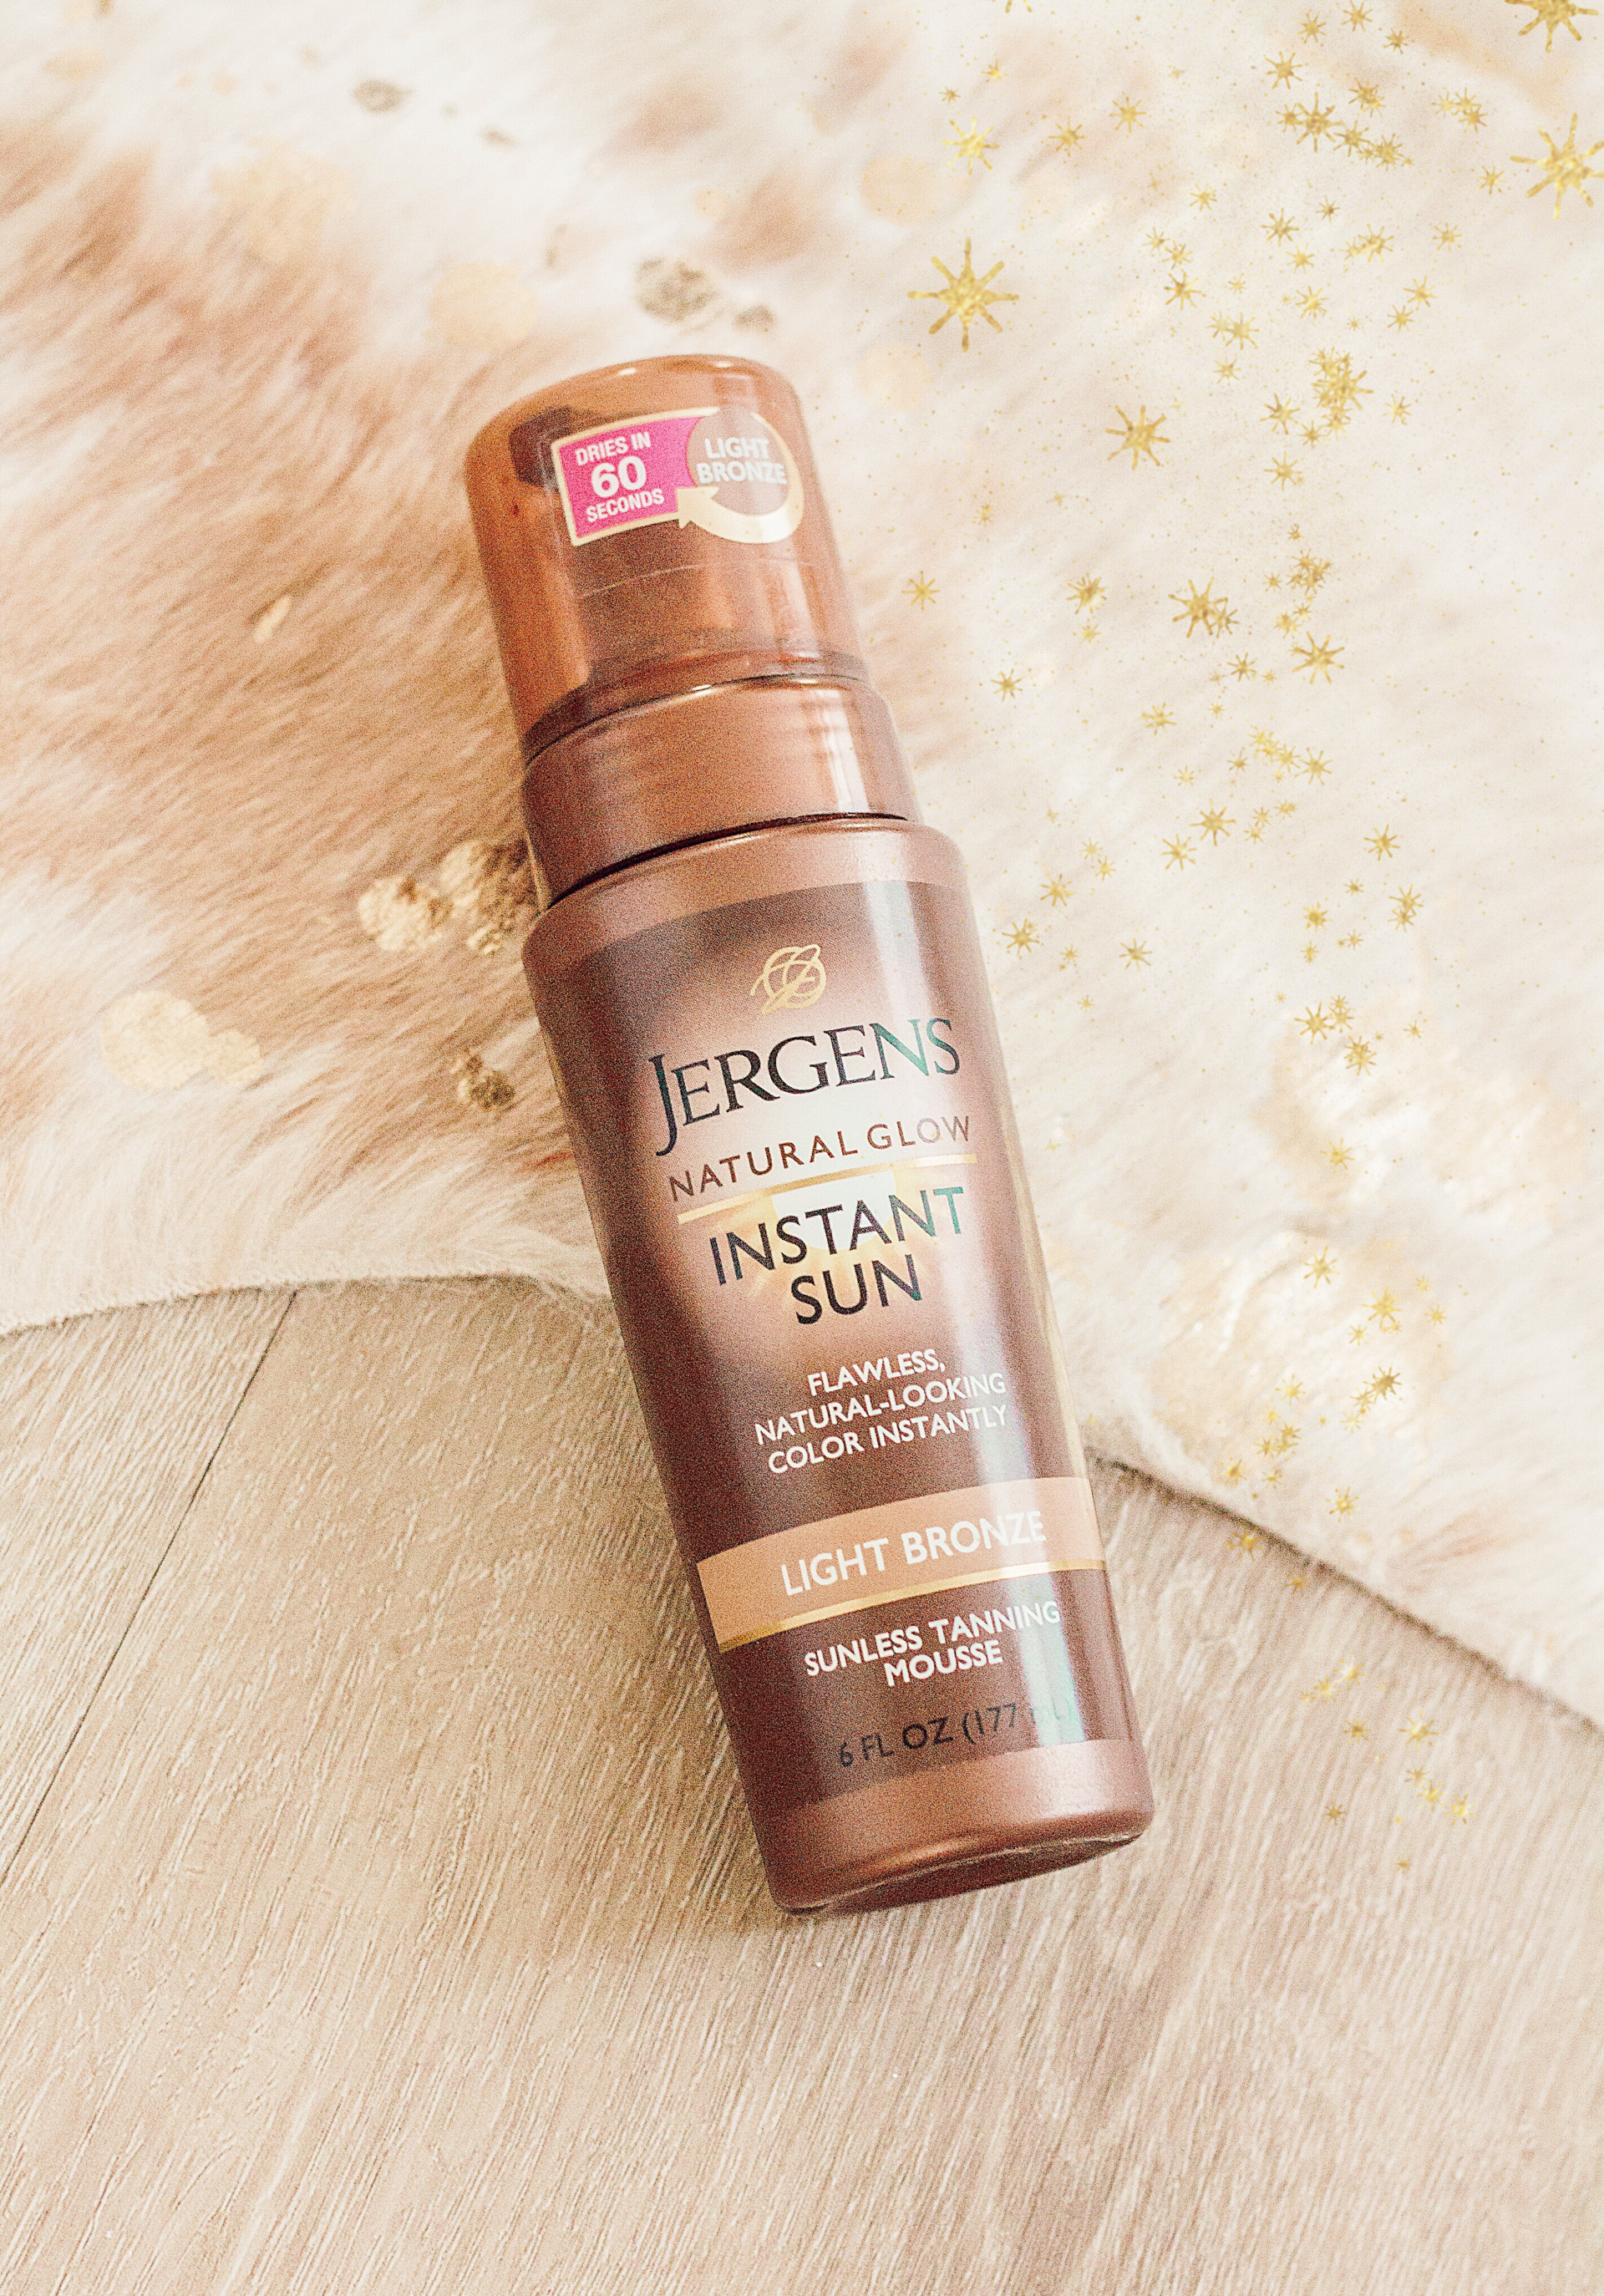 8f1082630154c My Drugstore Self-Tanning Routine with Jergens Natural Glow Instant Sun  Mousse